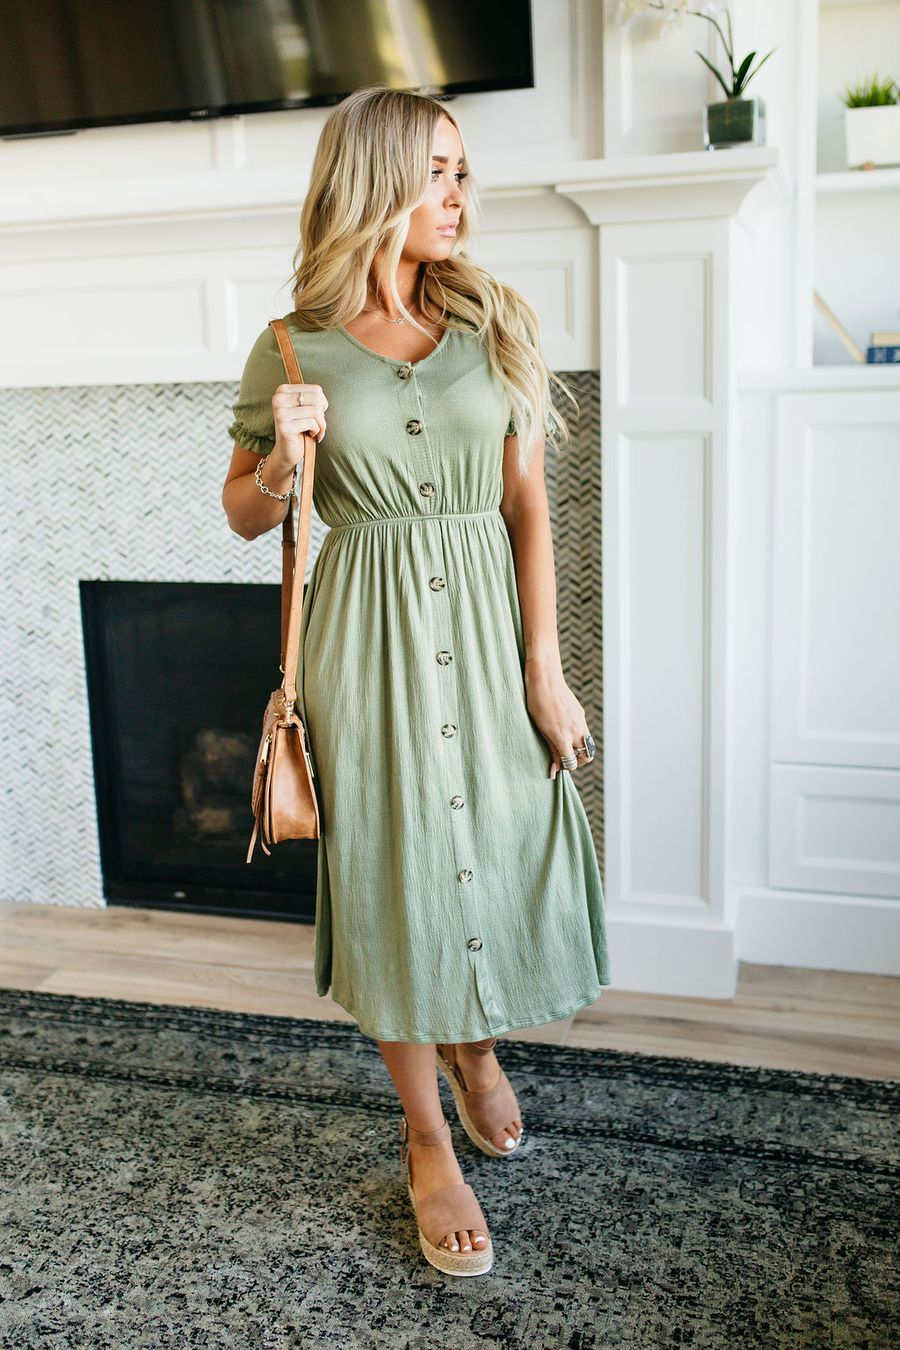 Cara Easy Dress With Images Modest Dresses Simple Dresses Modest Outfits [ 1350 x 900 Pixel ]